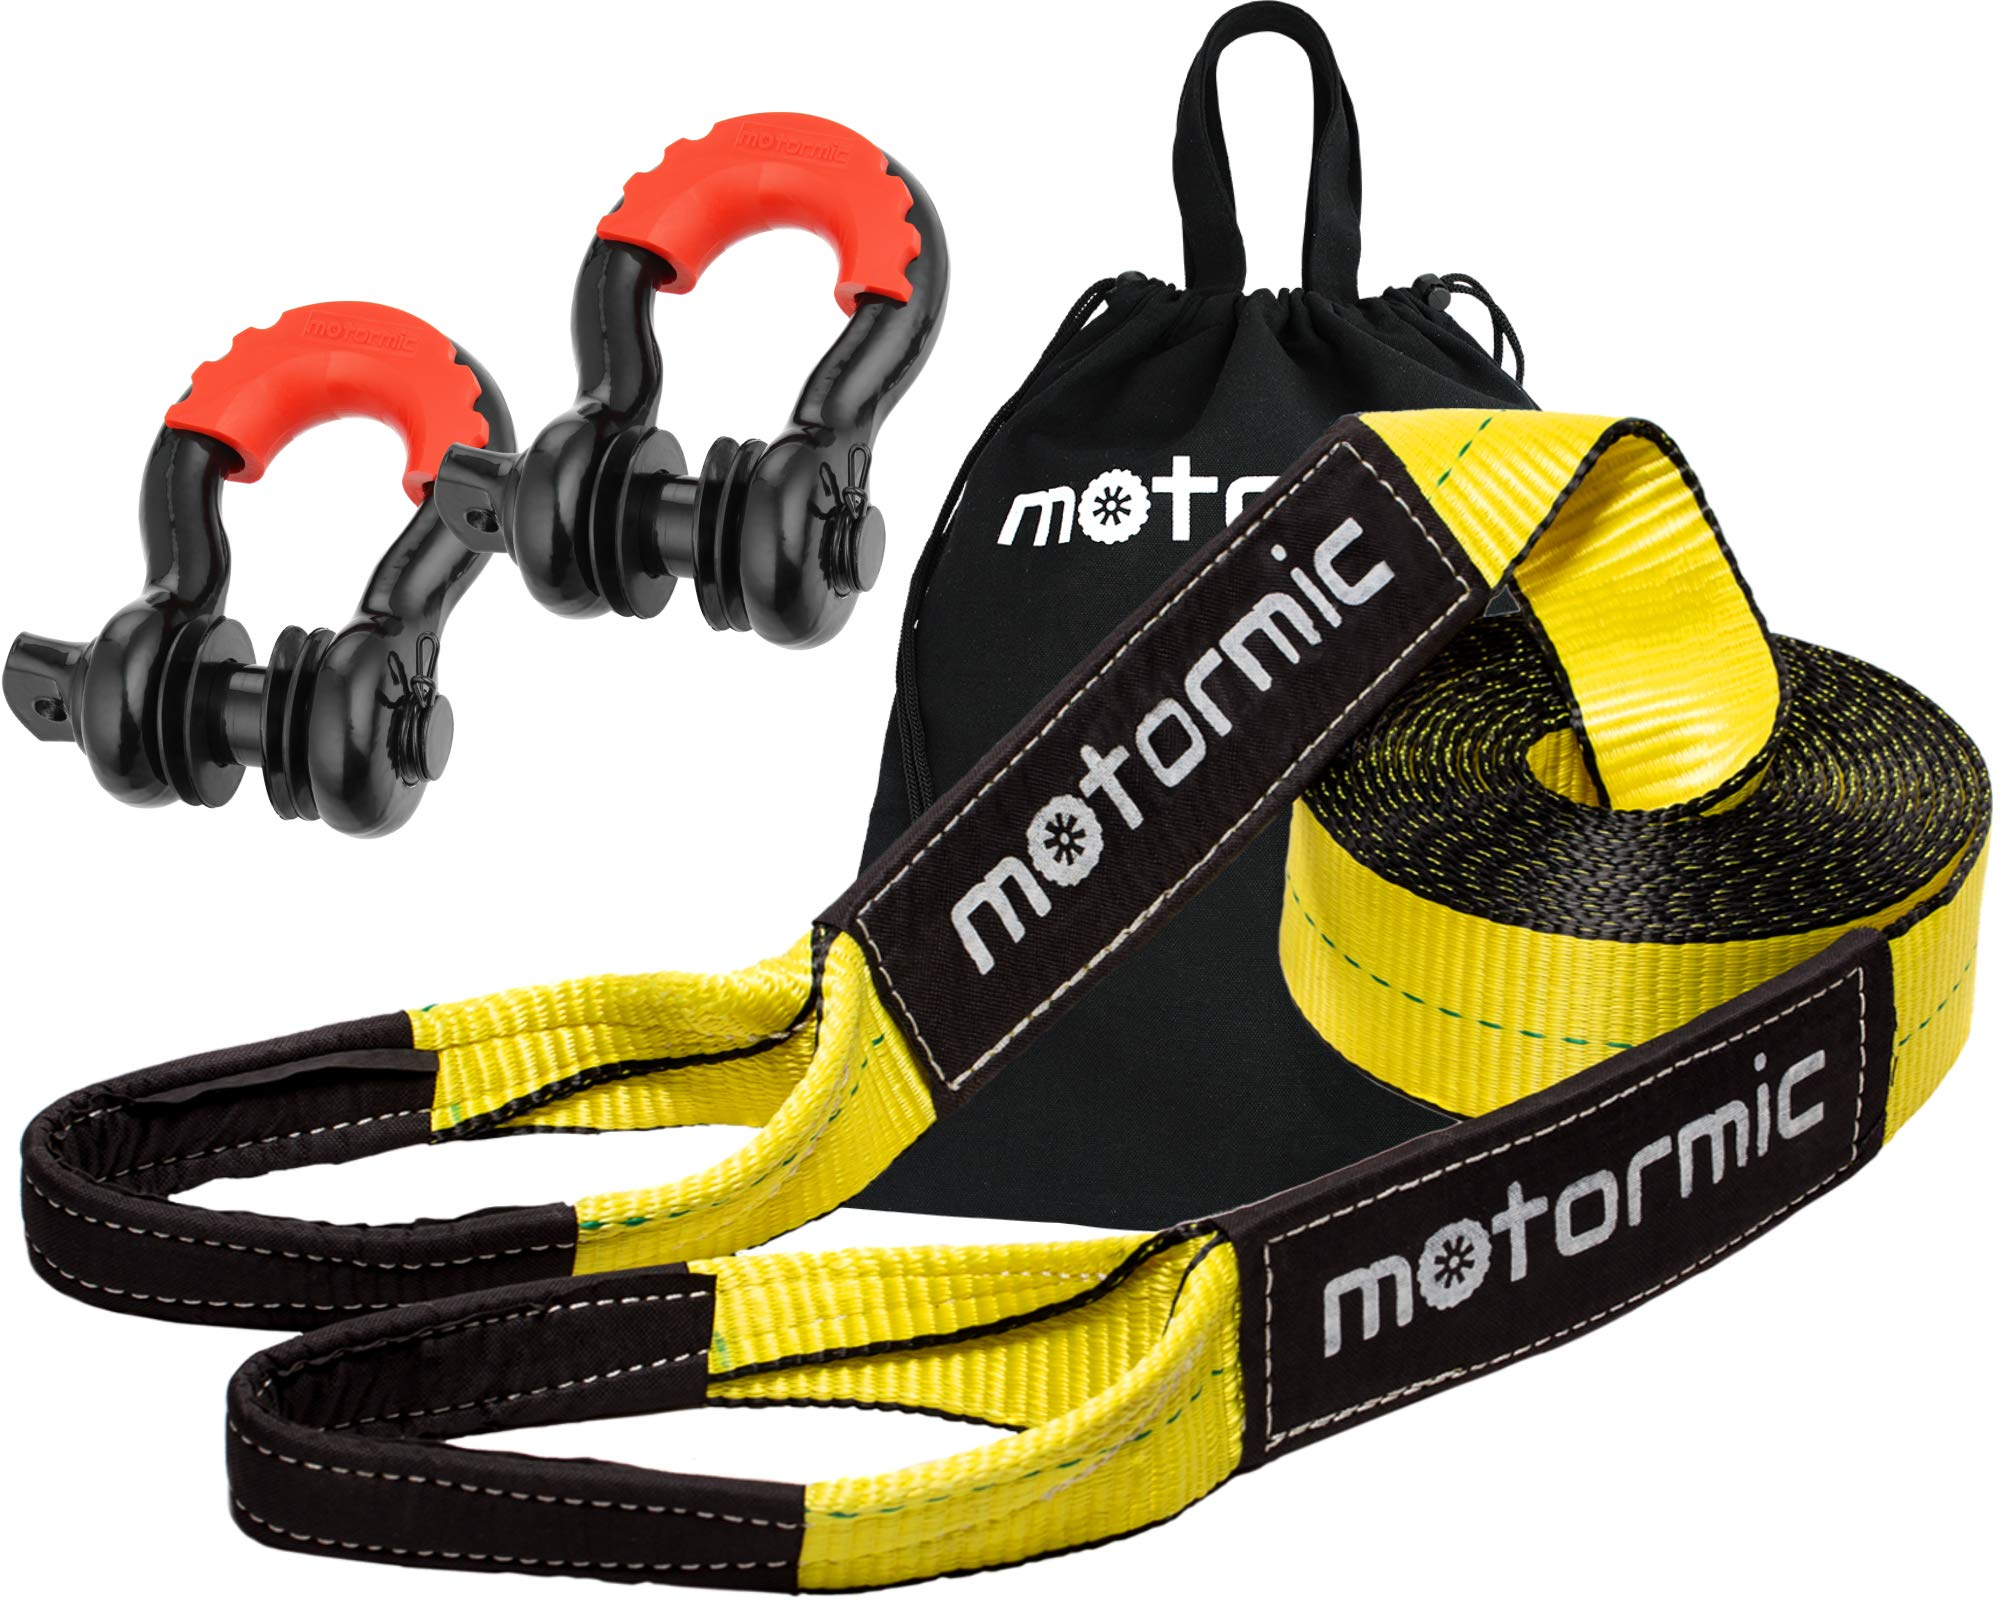 motormic Tow Strap Recovery Kit - 20 ft x 3 in (30,000 lbs.) Tow Rope + 3/4'' D Ring Shackles (2pcs.) + Storage Bag - Heavy Duty Straps for Winch - Truck, Car, ATV, Off Road Vehicle Towing by motormic